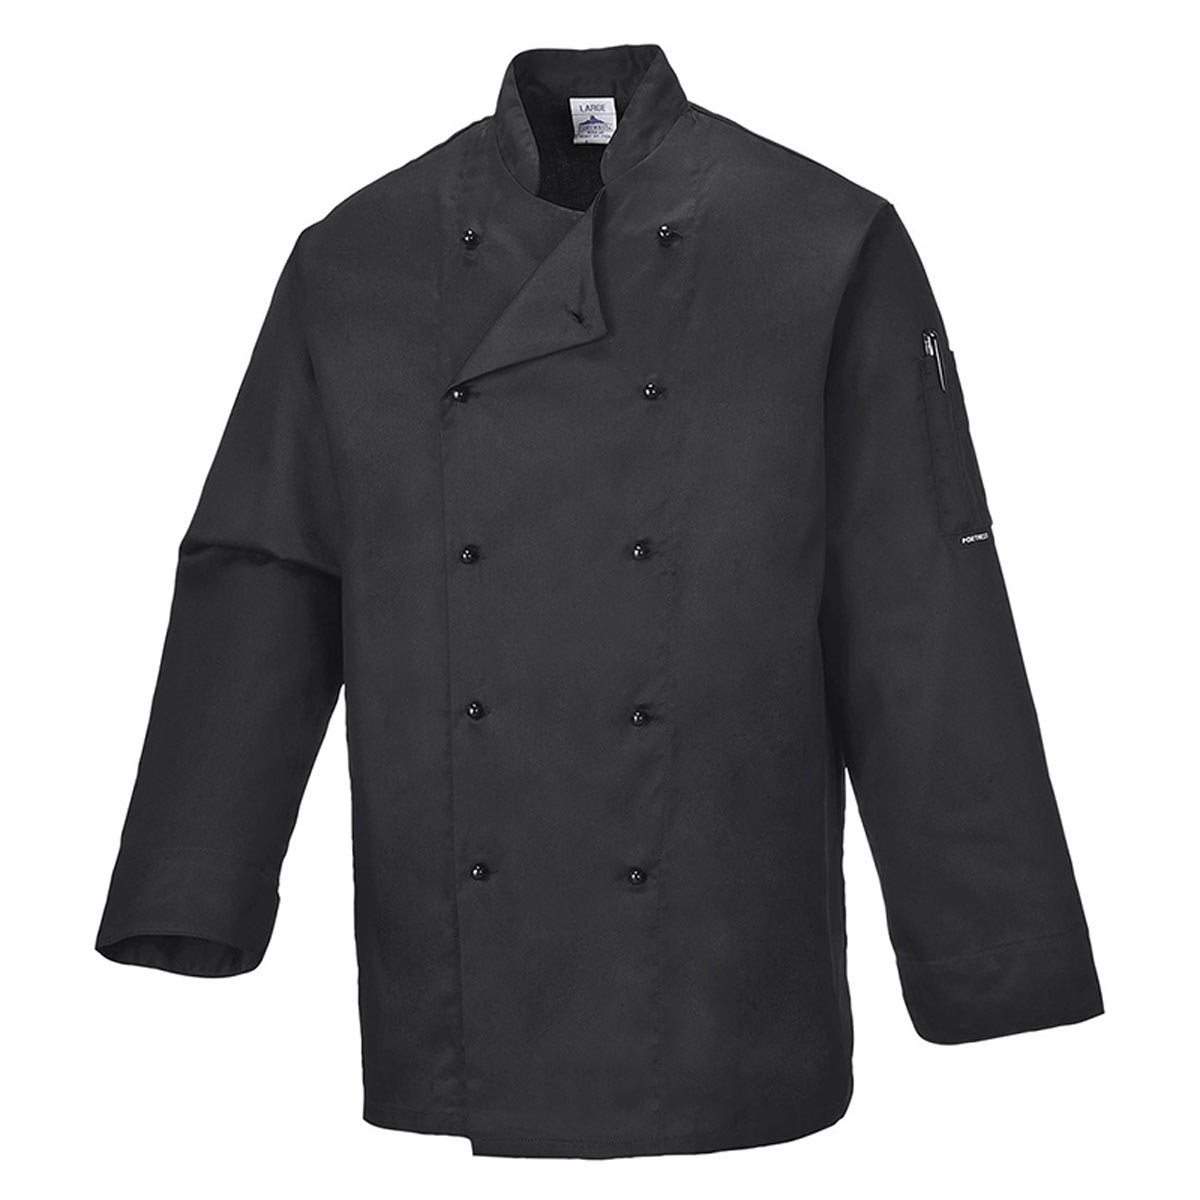 190g Somerset Chefs Jacket - WCJA834-black